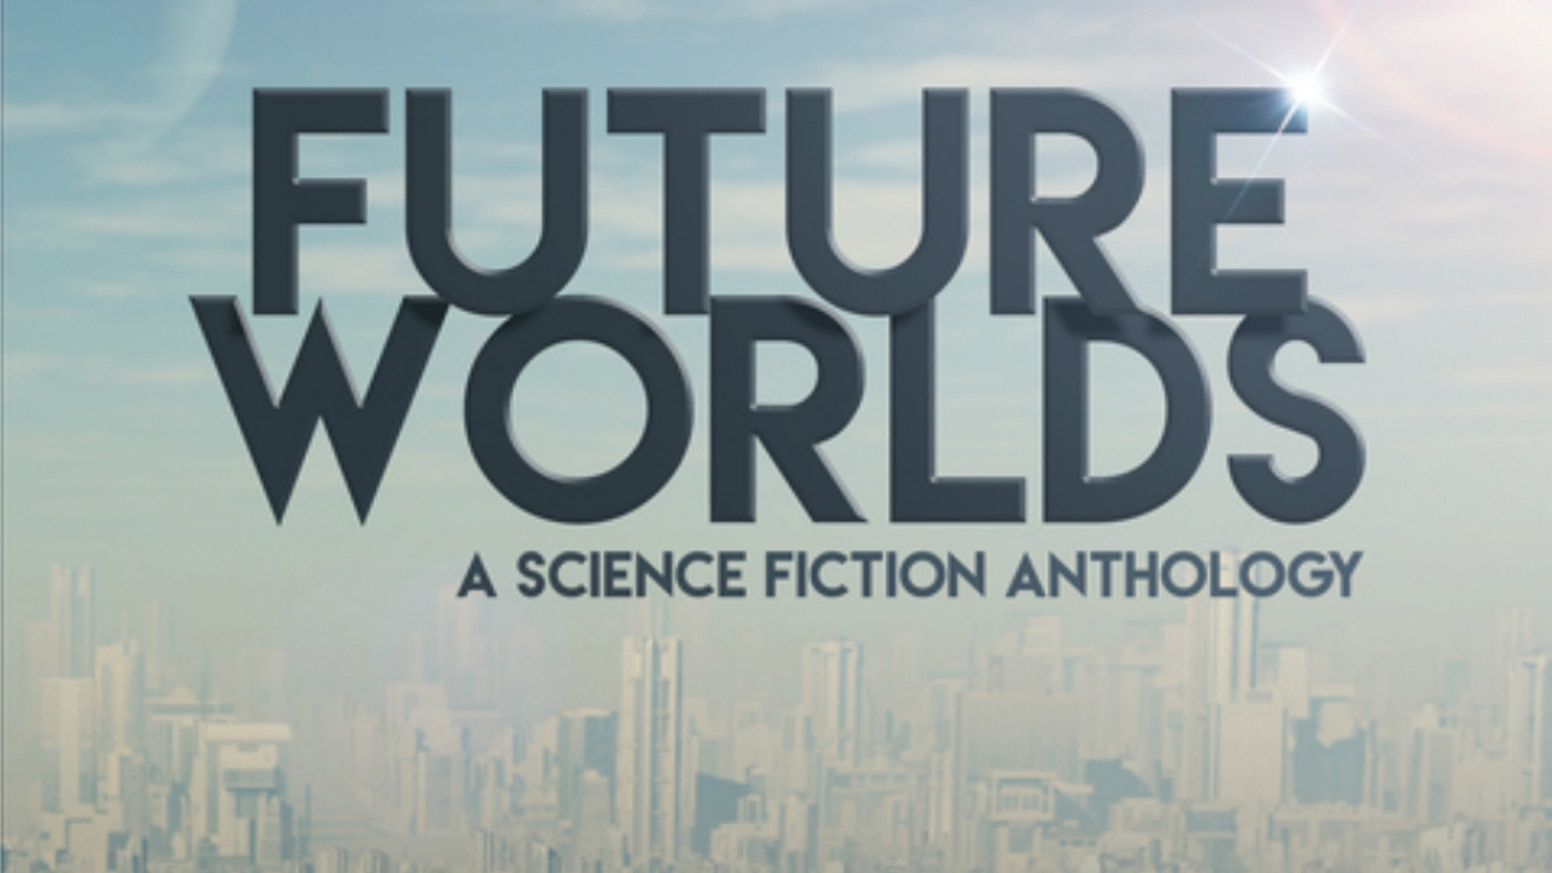 A clean science fiction anthology from 6 bestselling science fiction authors.